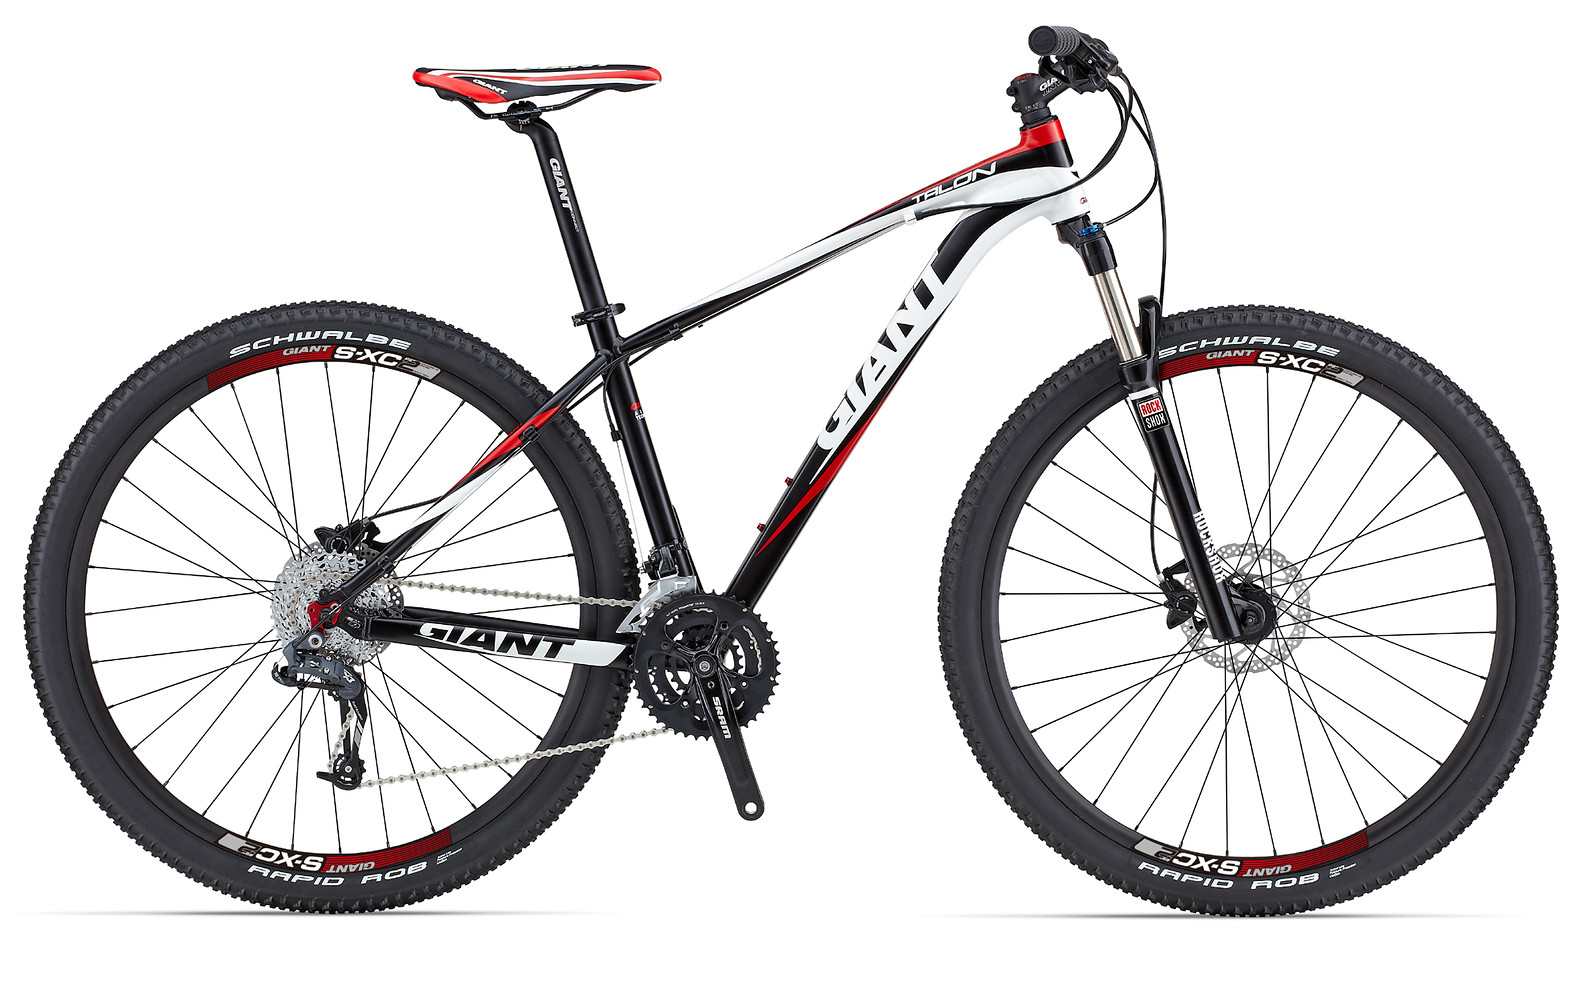 2013 Giant Talon 29er 0 Bike Talon_29er_0_v1